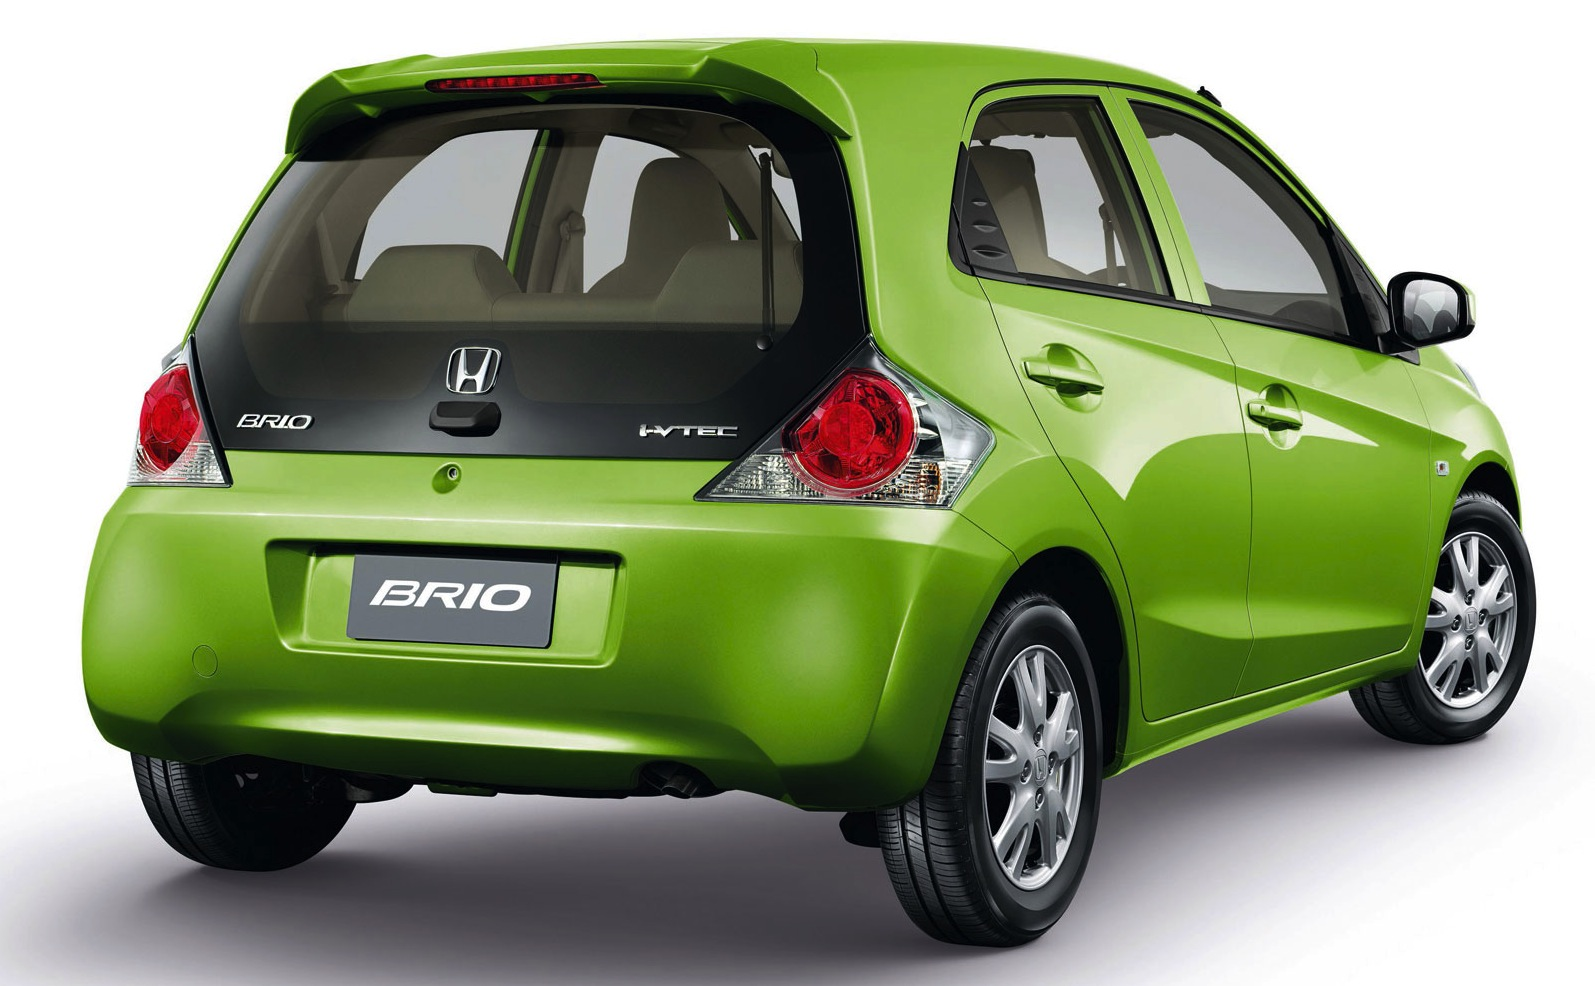 All About Honda: 2013 Honda Brio Review